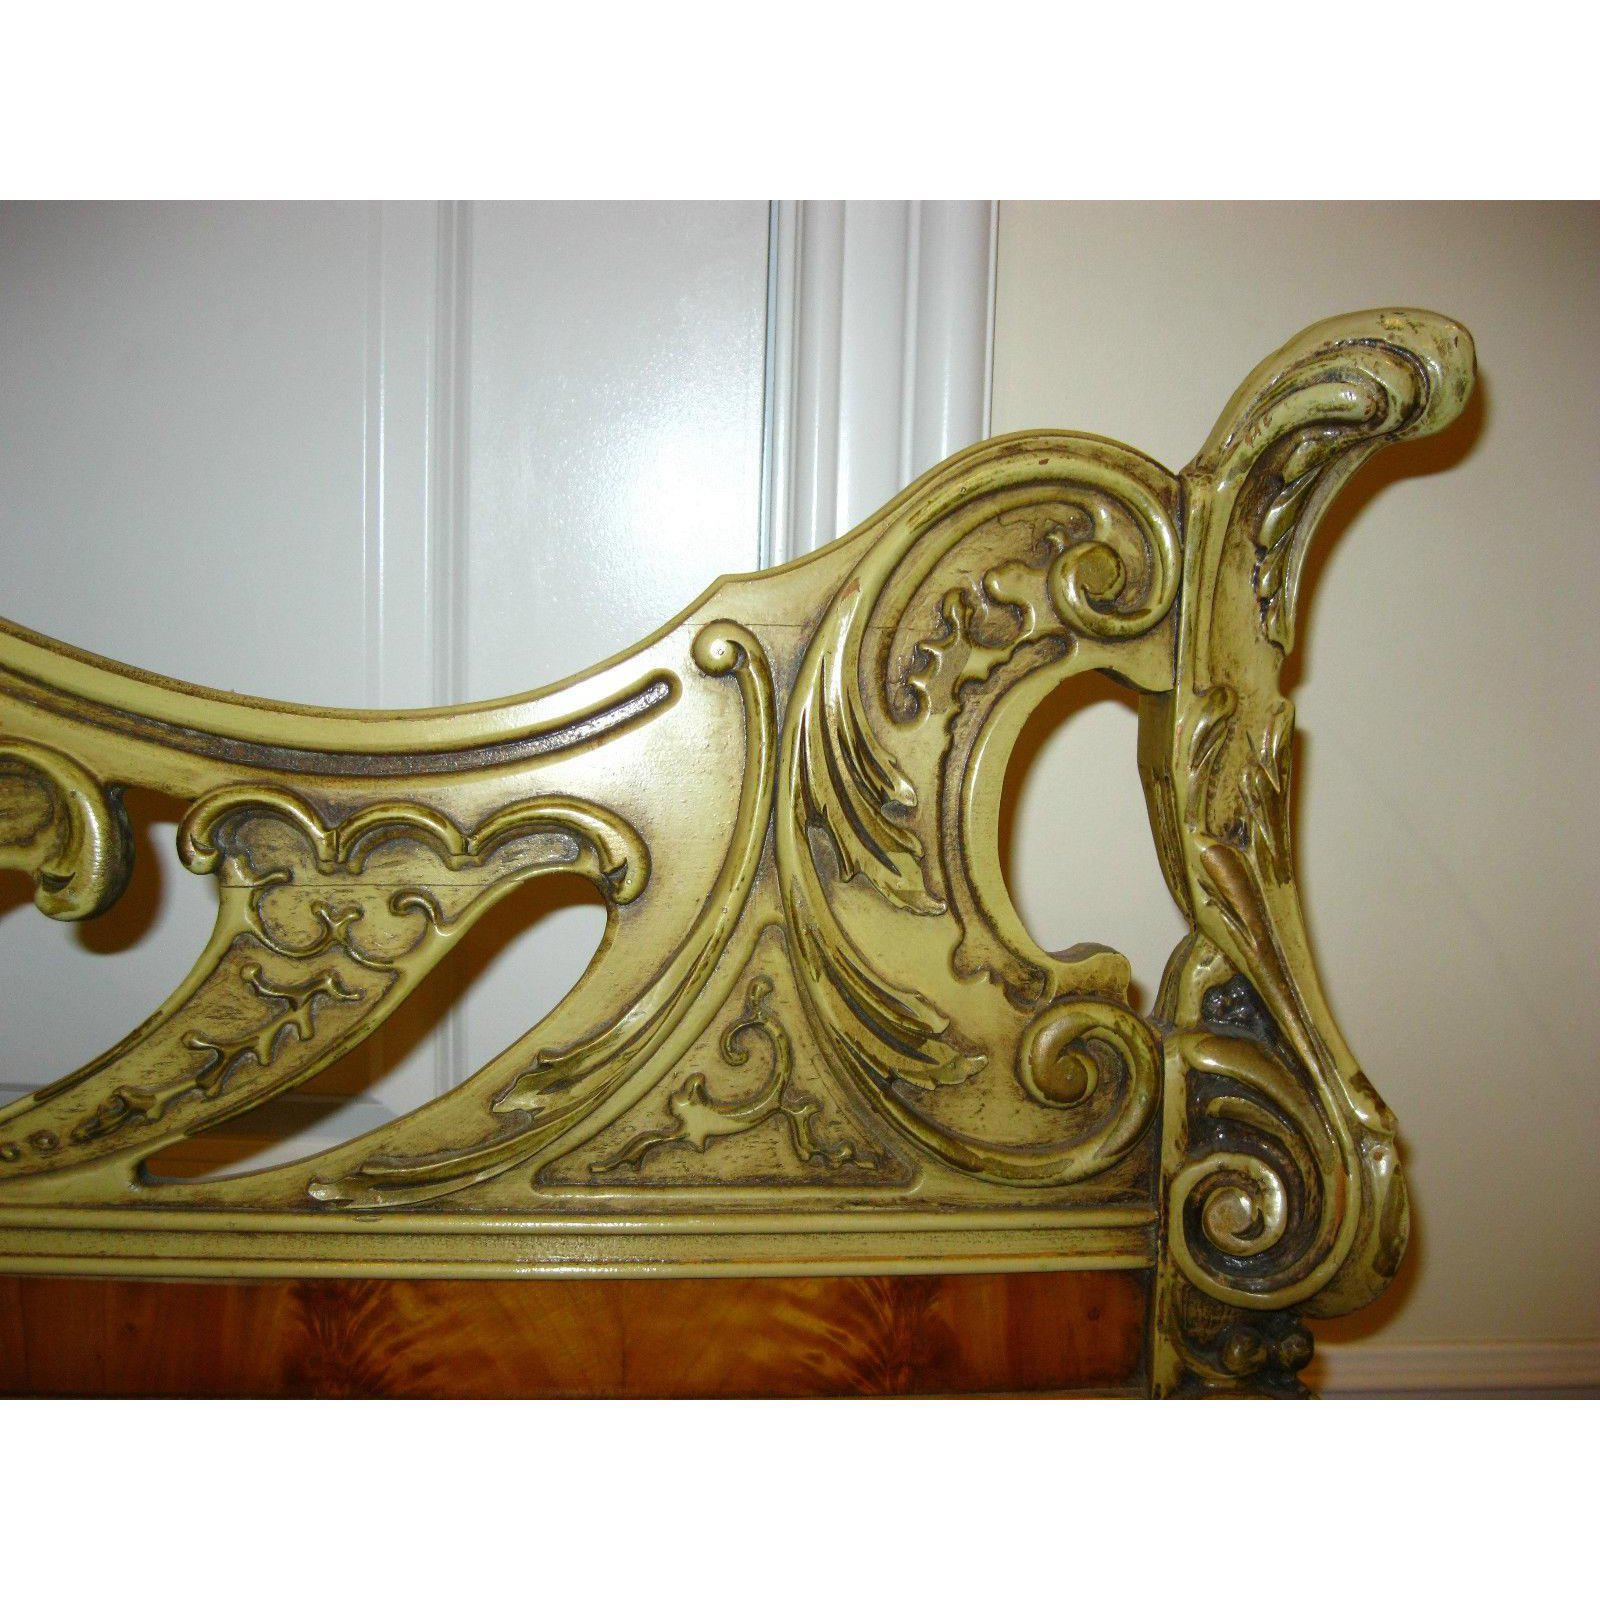 1950s Antique Bed Frame Stewartstown Furniture ~ French Louis XVl Rococo  Style Ornate Headboard For Sale